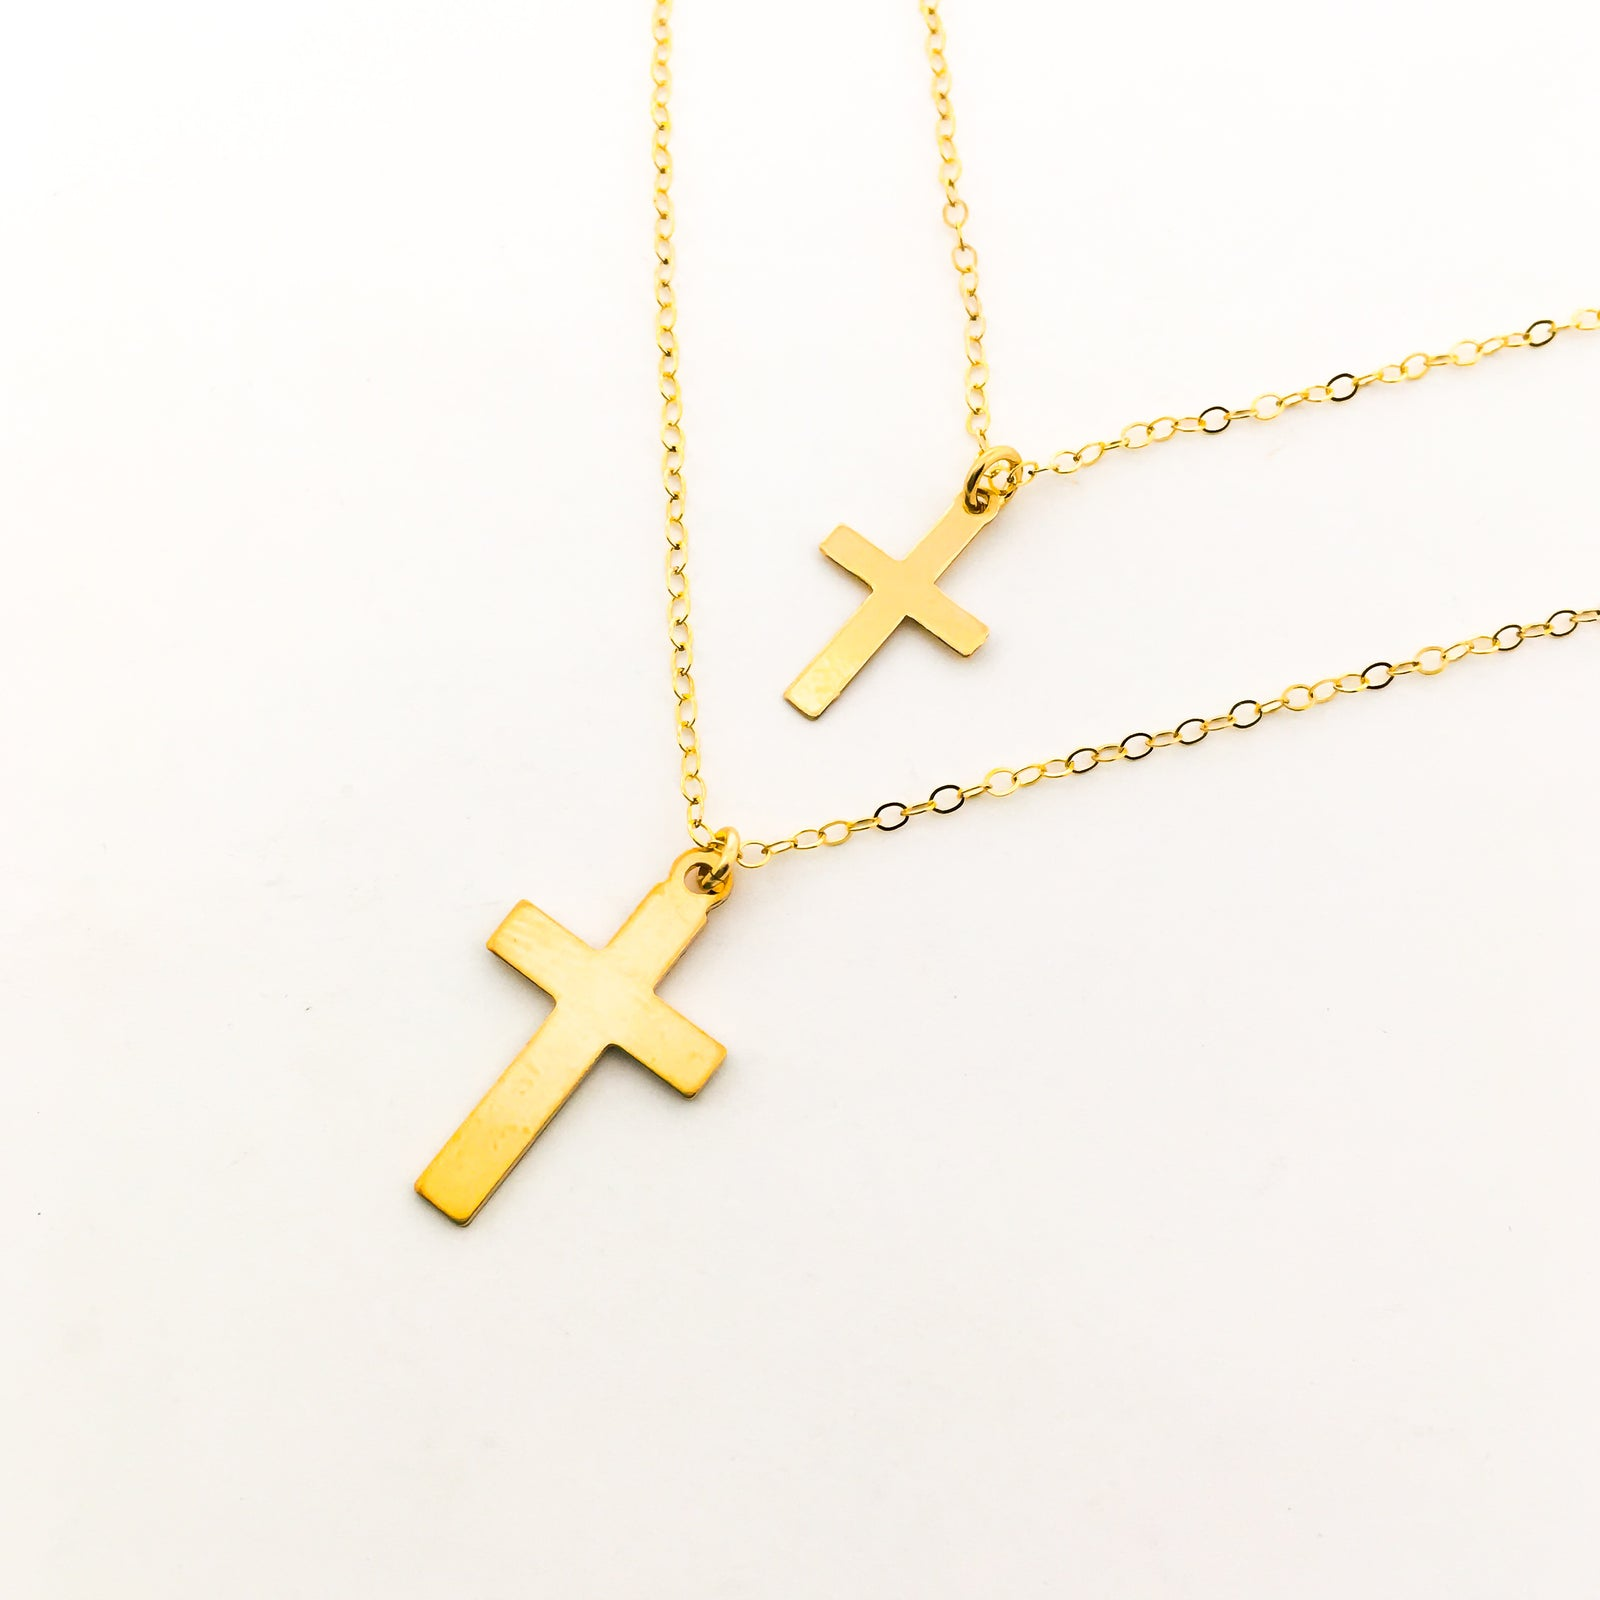 14K GOLD-FILLED CROSS NECKLACES | SIZE OPTIONS